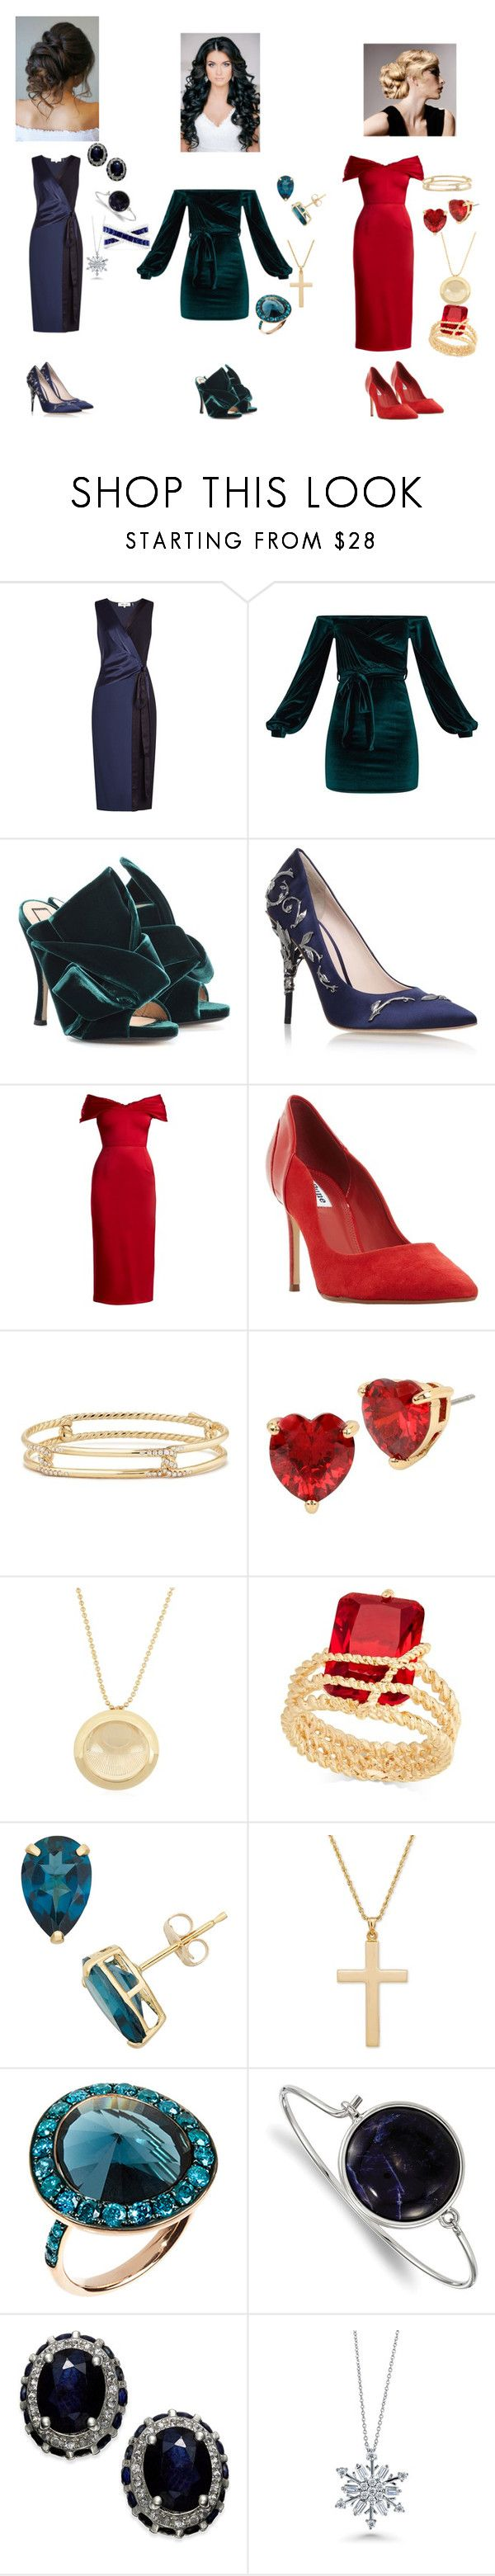 """""""Get ready with me christmas party"""" by kellykalymnoskd on Polyvore featuring Diane Von Furstenberg, N°21, Ralph & Russo, Emilio De La Morena, Dune, David Yurman, Betsey Johnson, Charter Club, Annoushka and 1928"""